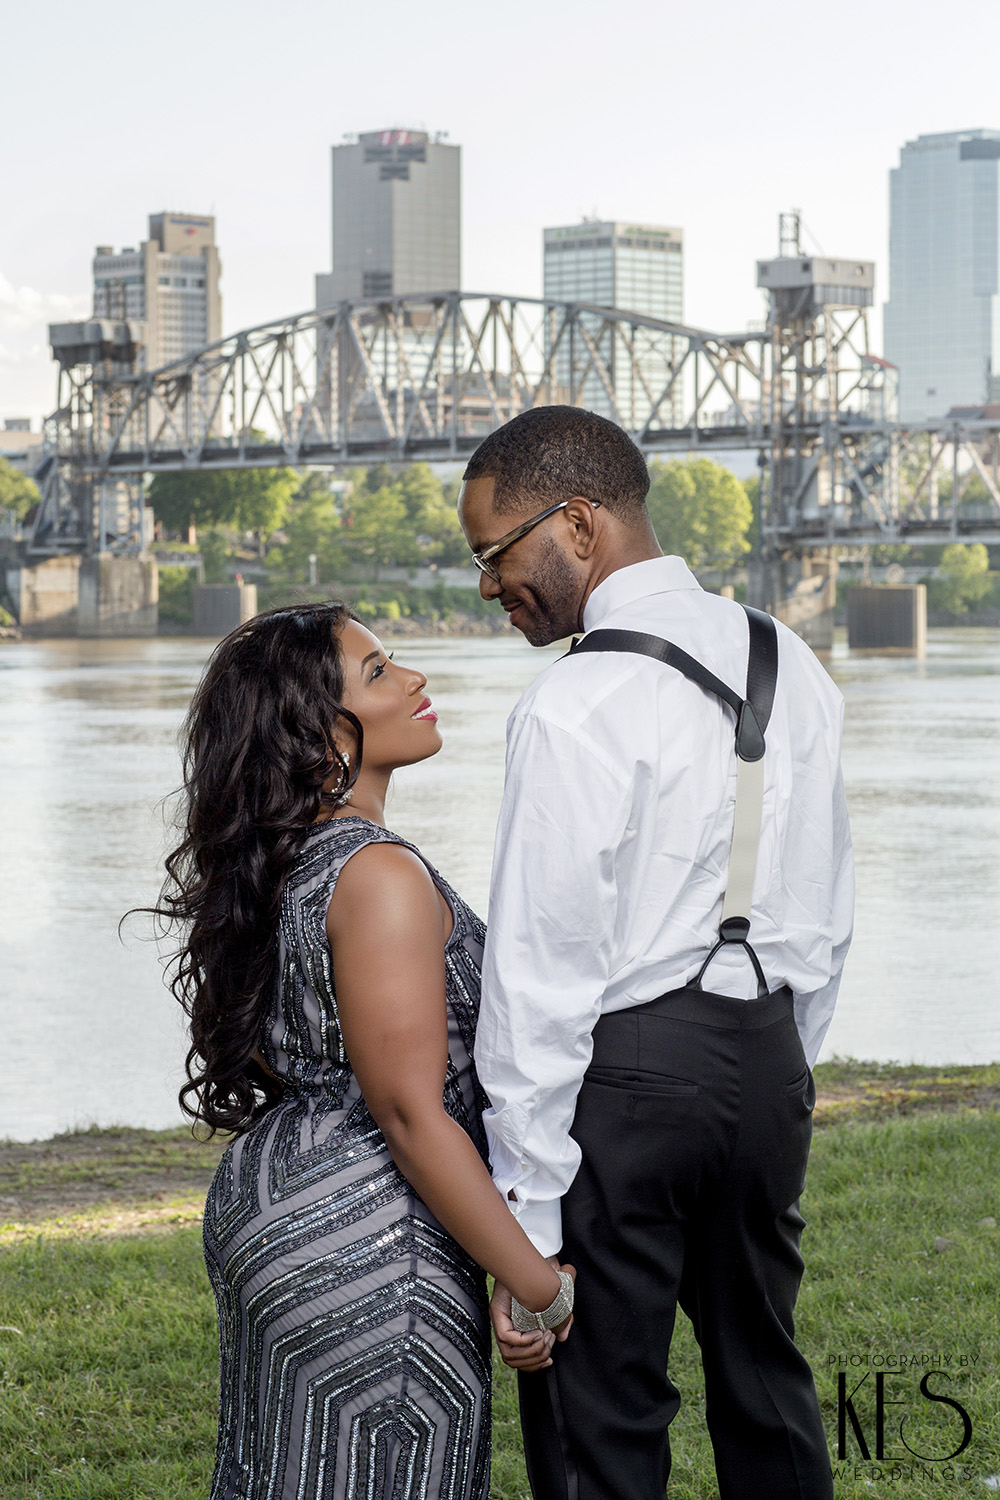 TIna_James_Engagments_0328.JPG